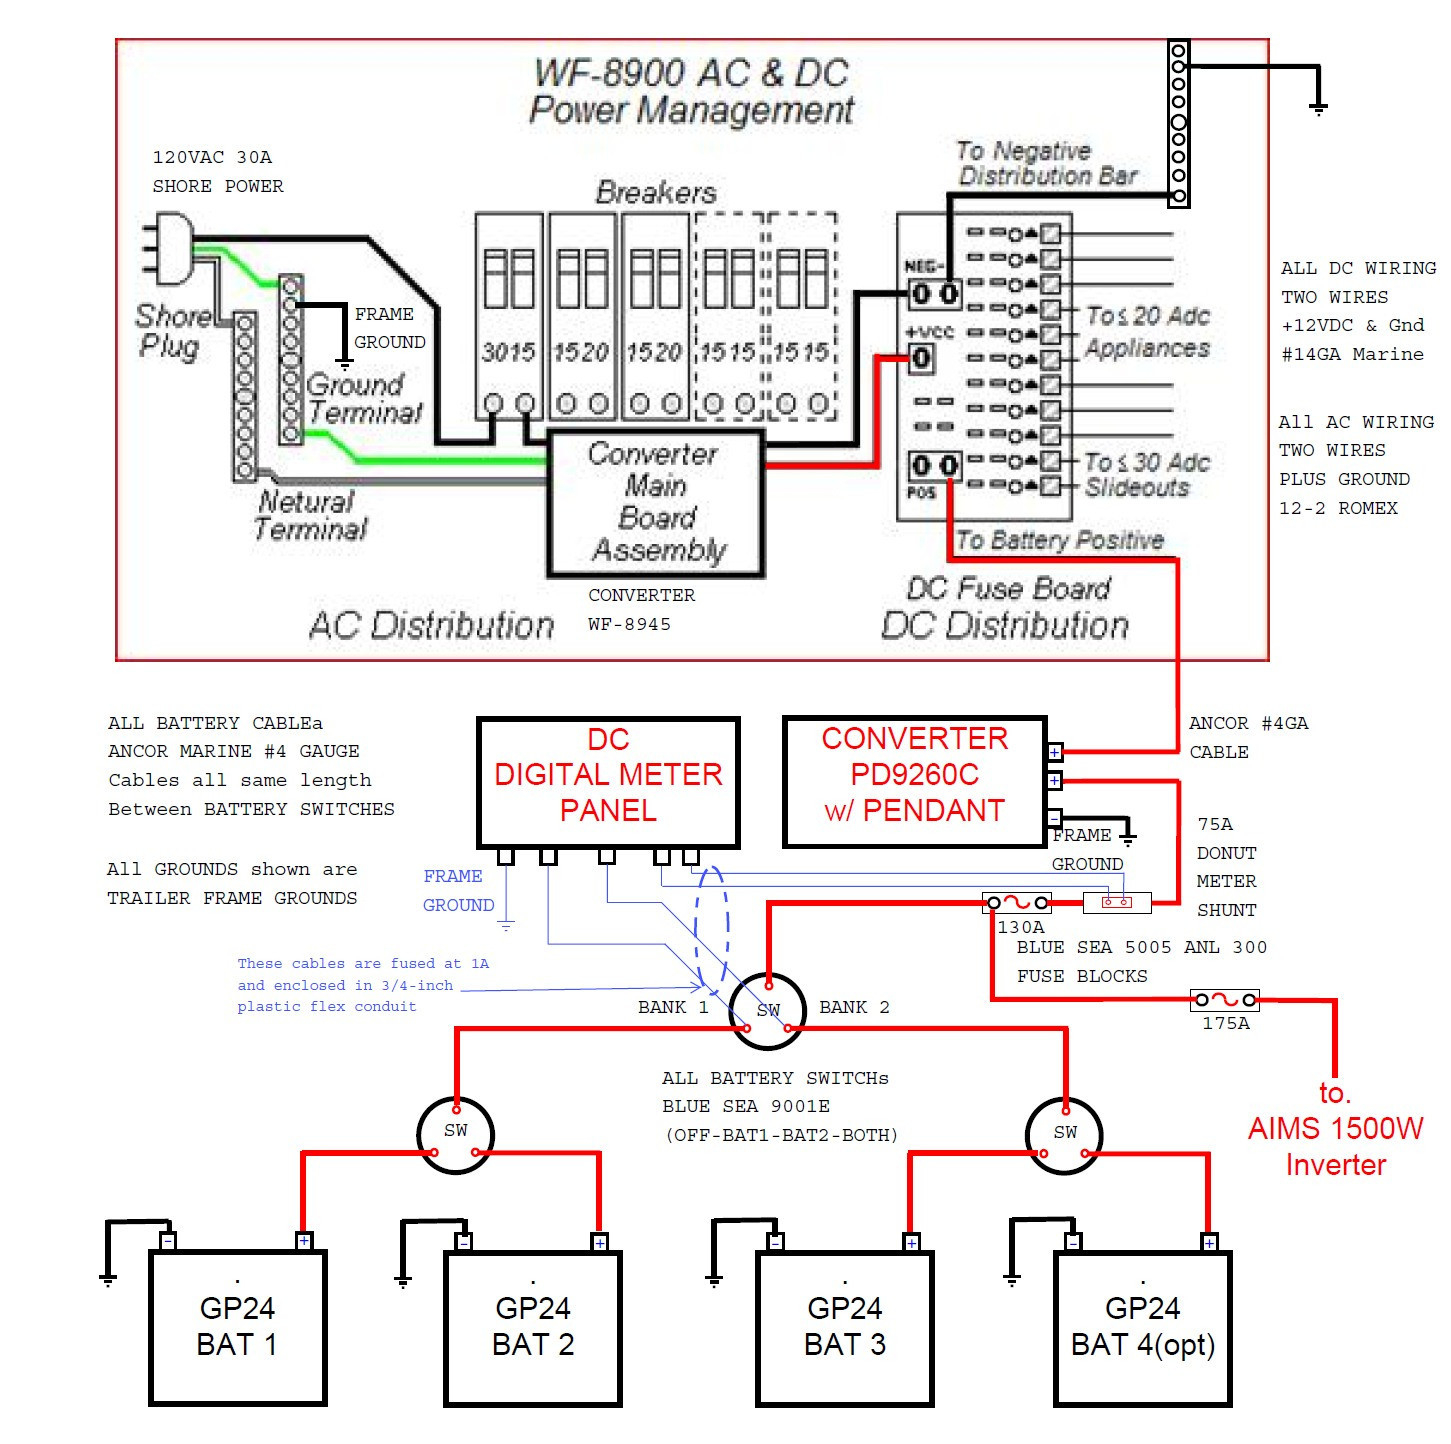 DIAGRAM] 50 30 20 Rv Wiring Diagram Free Download FULL Version HD Quality  Free Download - MAAUTOCARS.CENACCHIEDITRICE.ITcenac